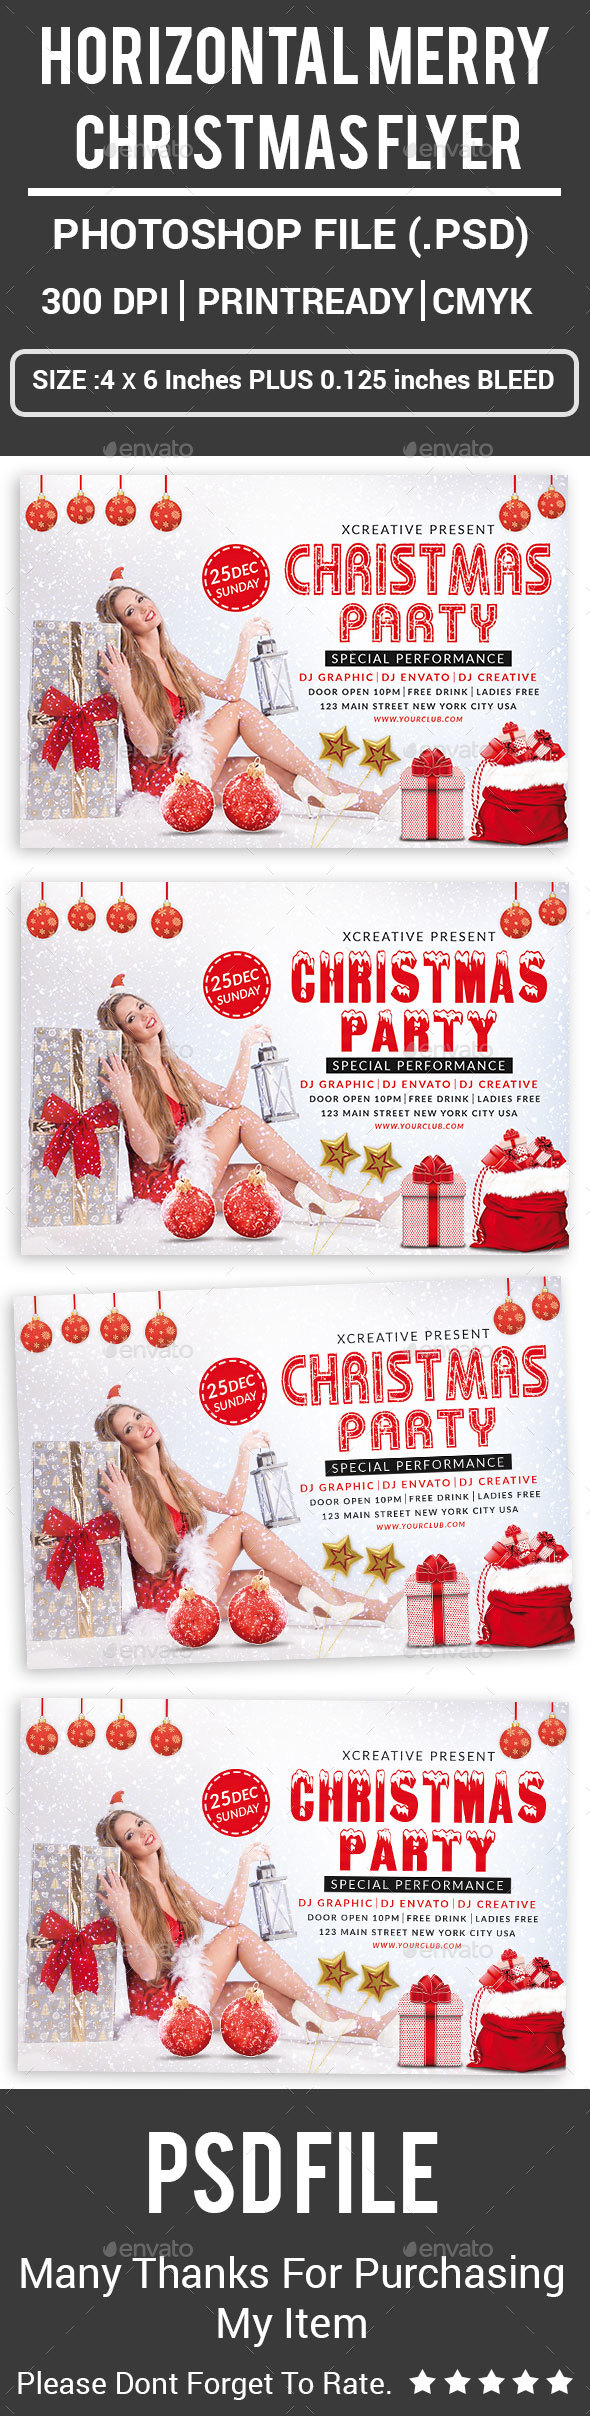 GraphicRiver Horizontal Merry Christmas Flyer 21117412